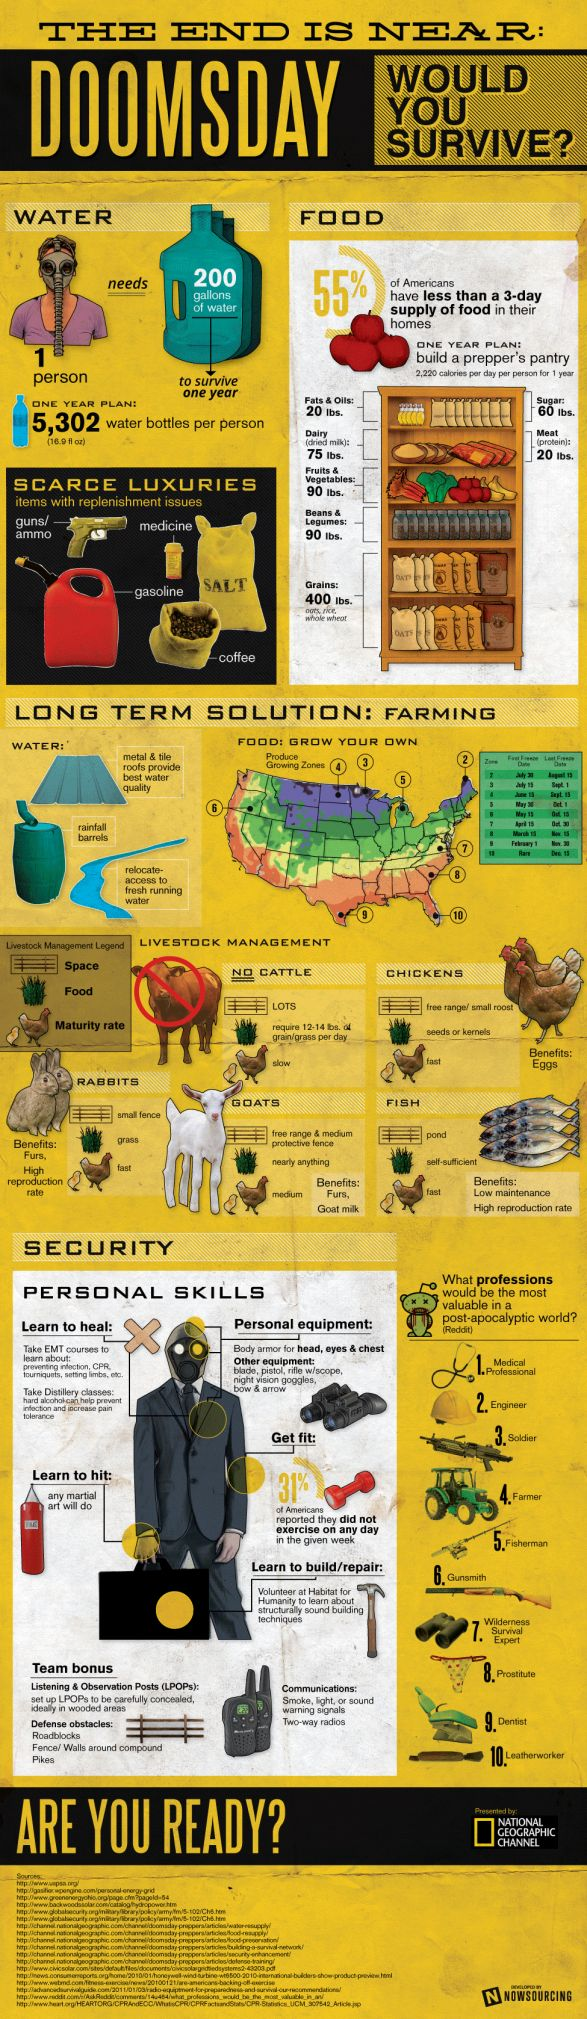 Prepping Infographic: Would You Survive?